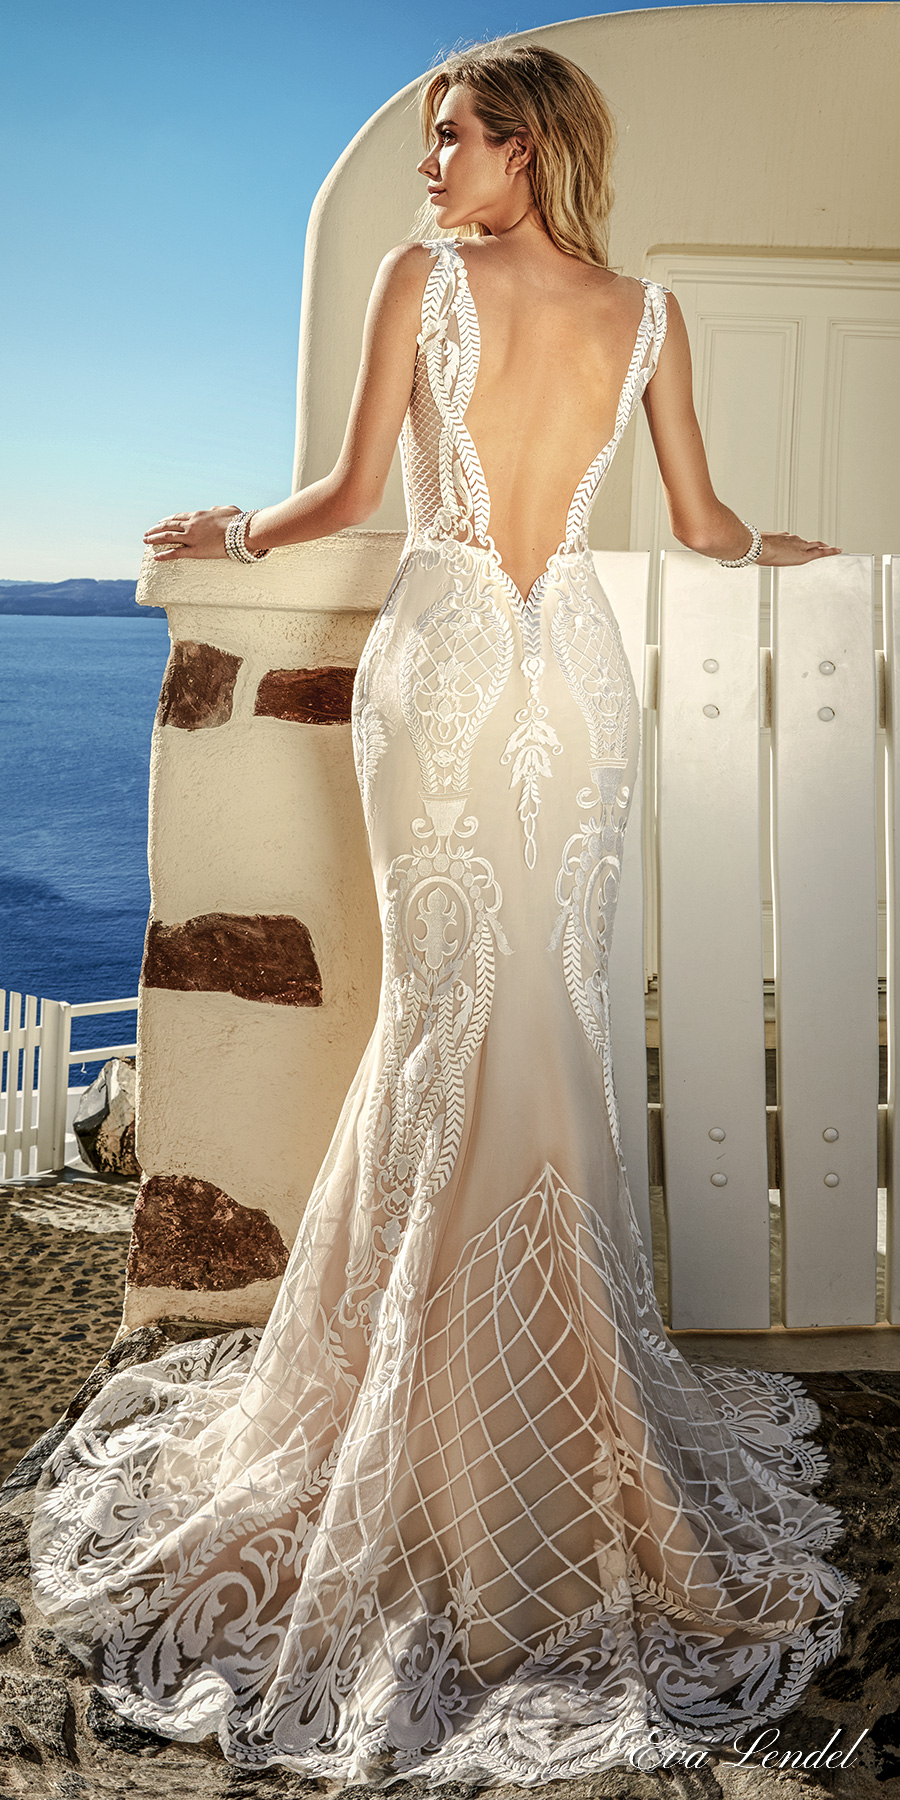 eva lendel 2017 bridal sleeveless thin strap v neckline full embellishment elegant sexy fit and flare wedding dress open low v back sweep train (tailor) bv